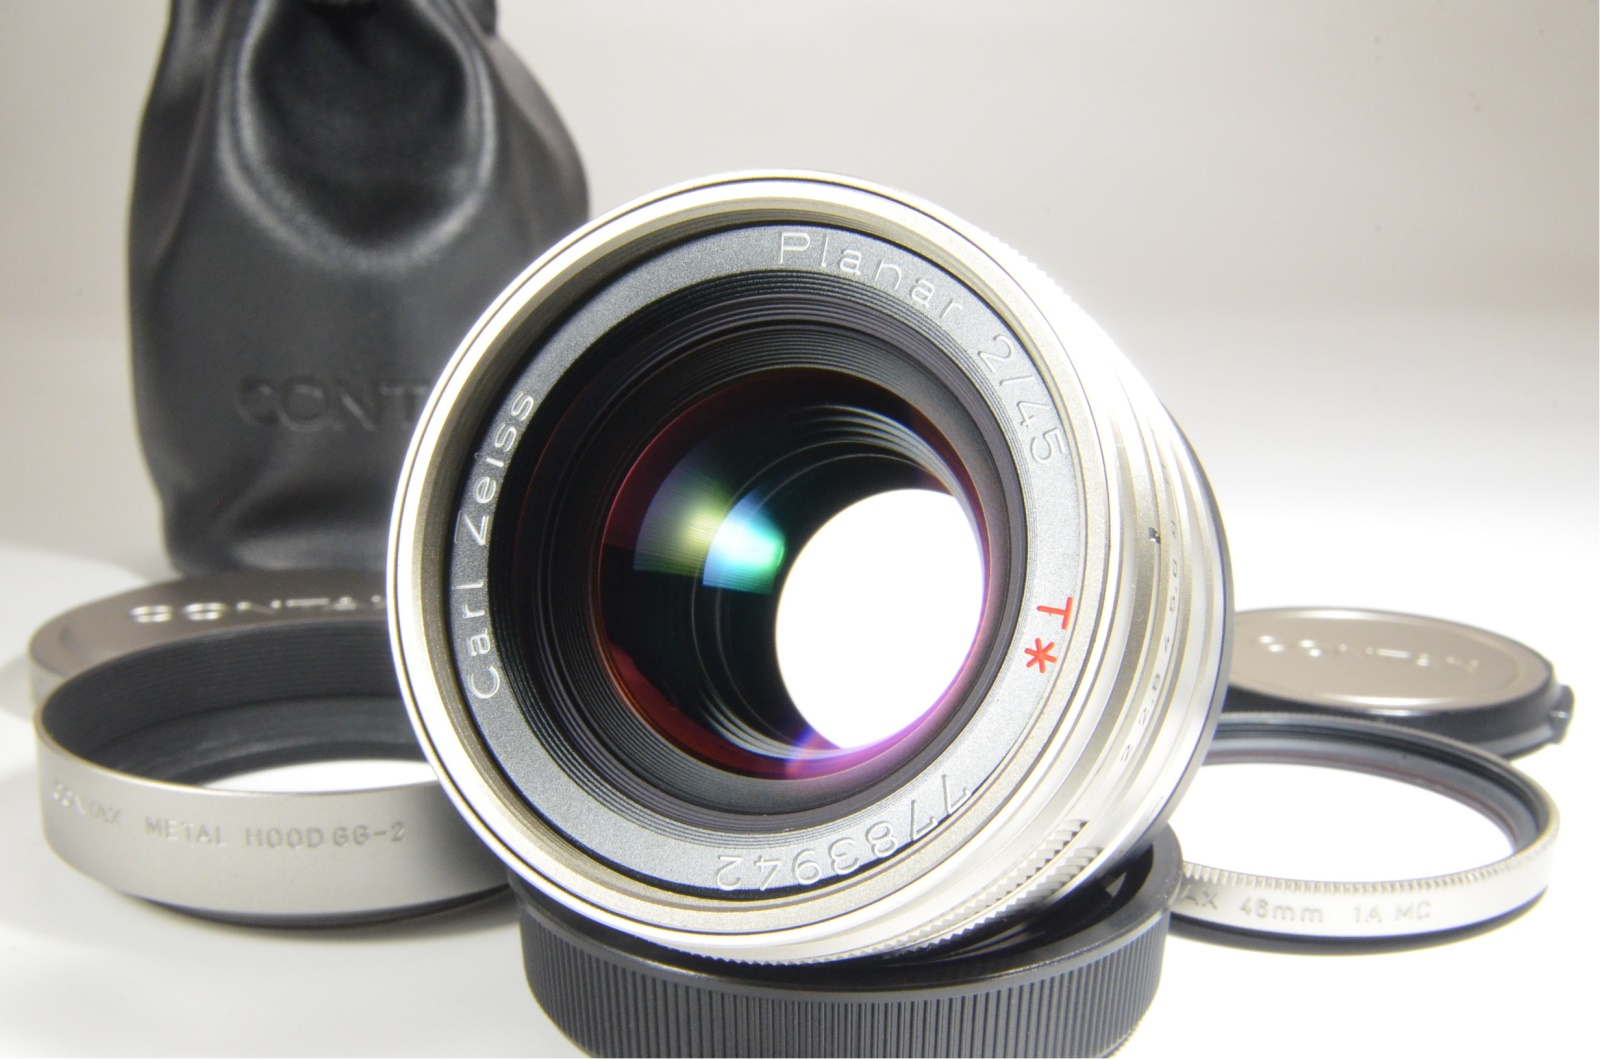 contax g2 camera with planar 45mm, sonnar 90mm, biogon 21mm, viewfinder